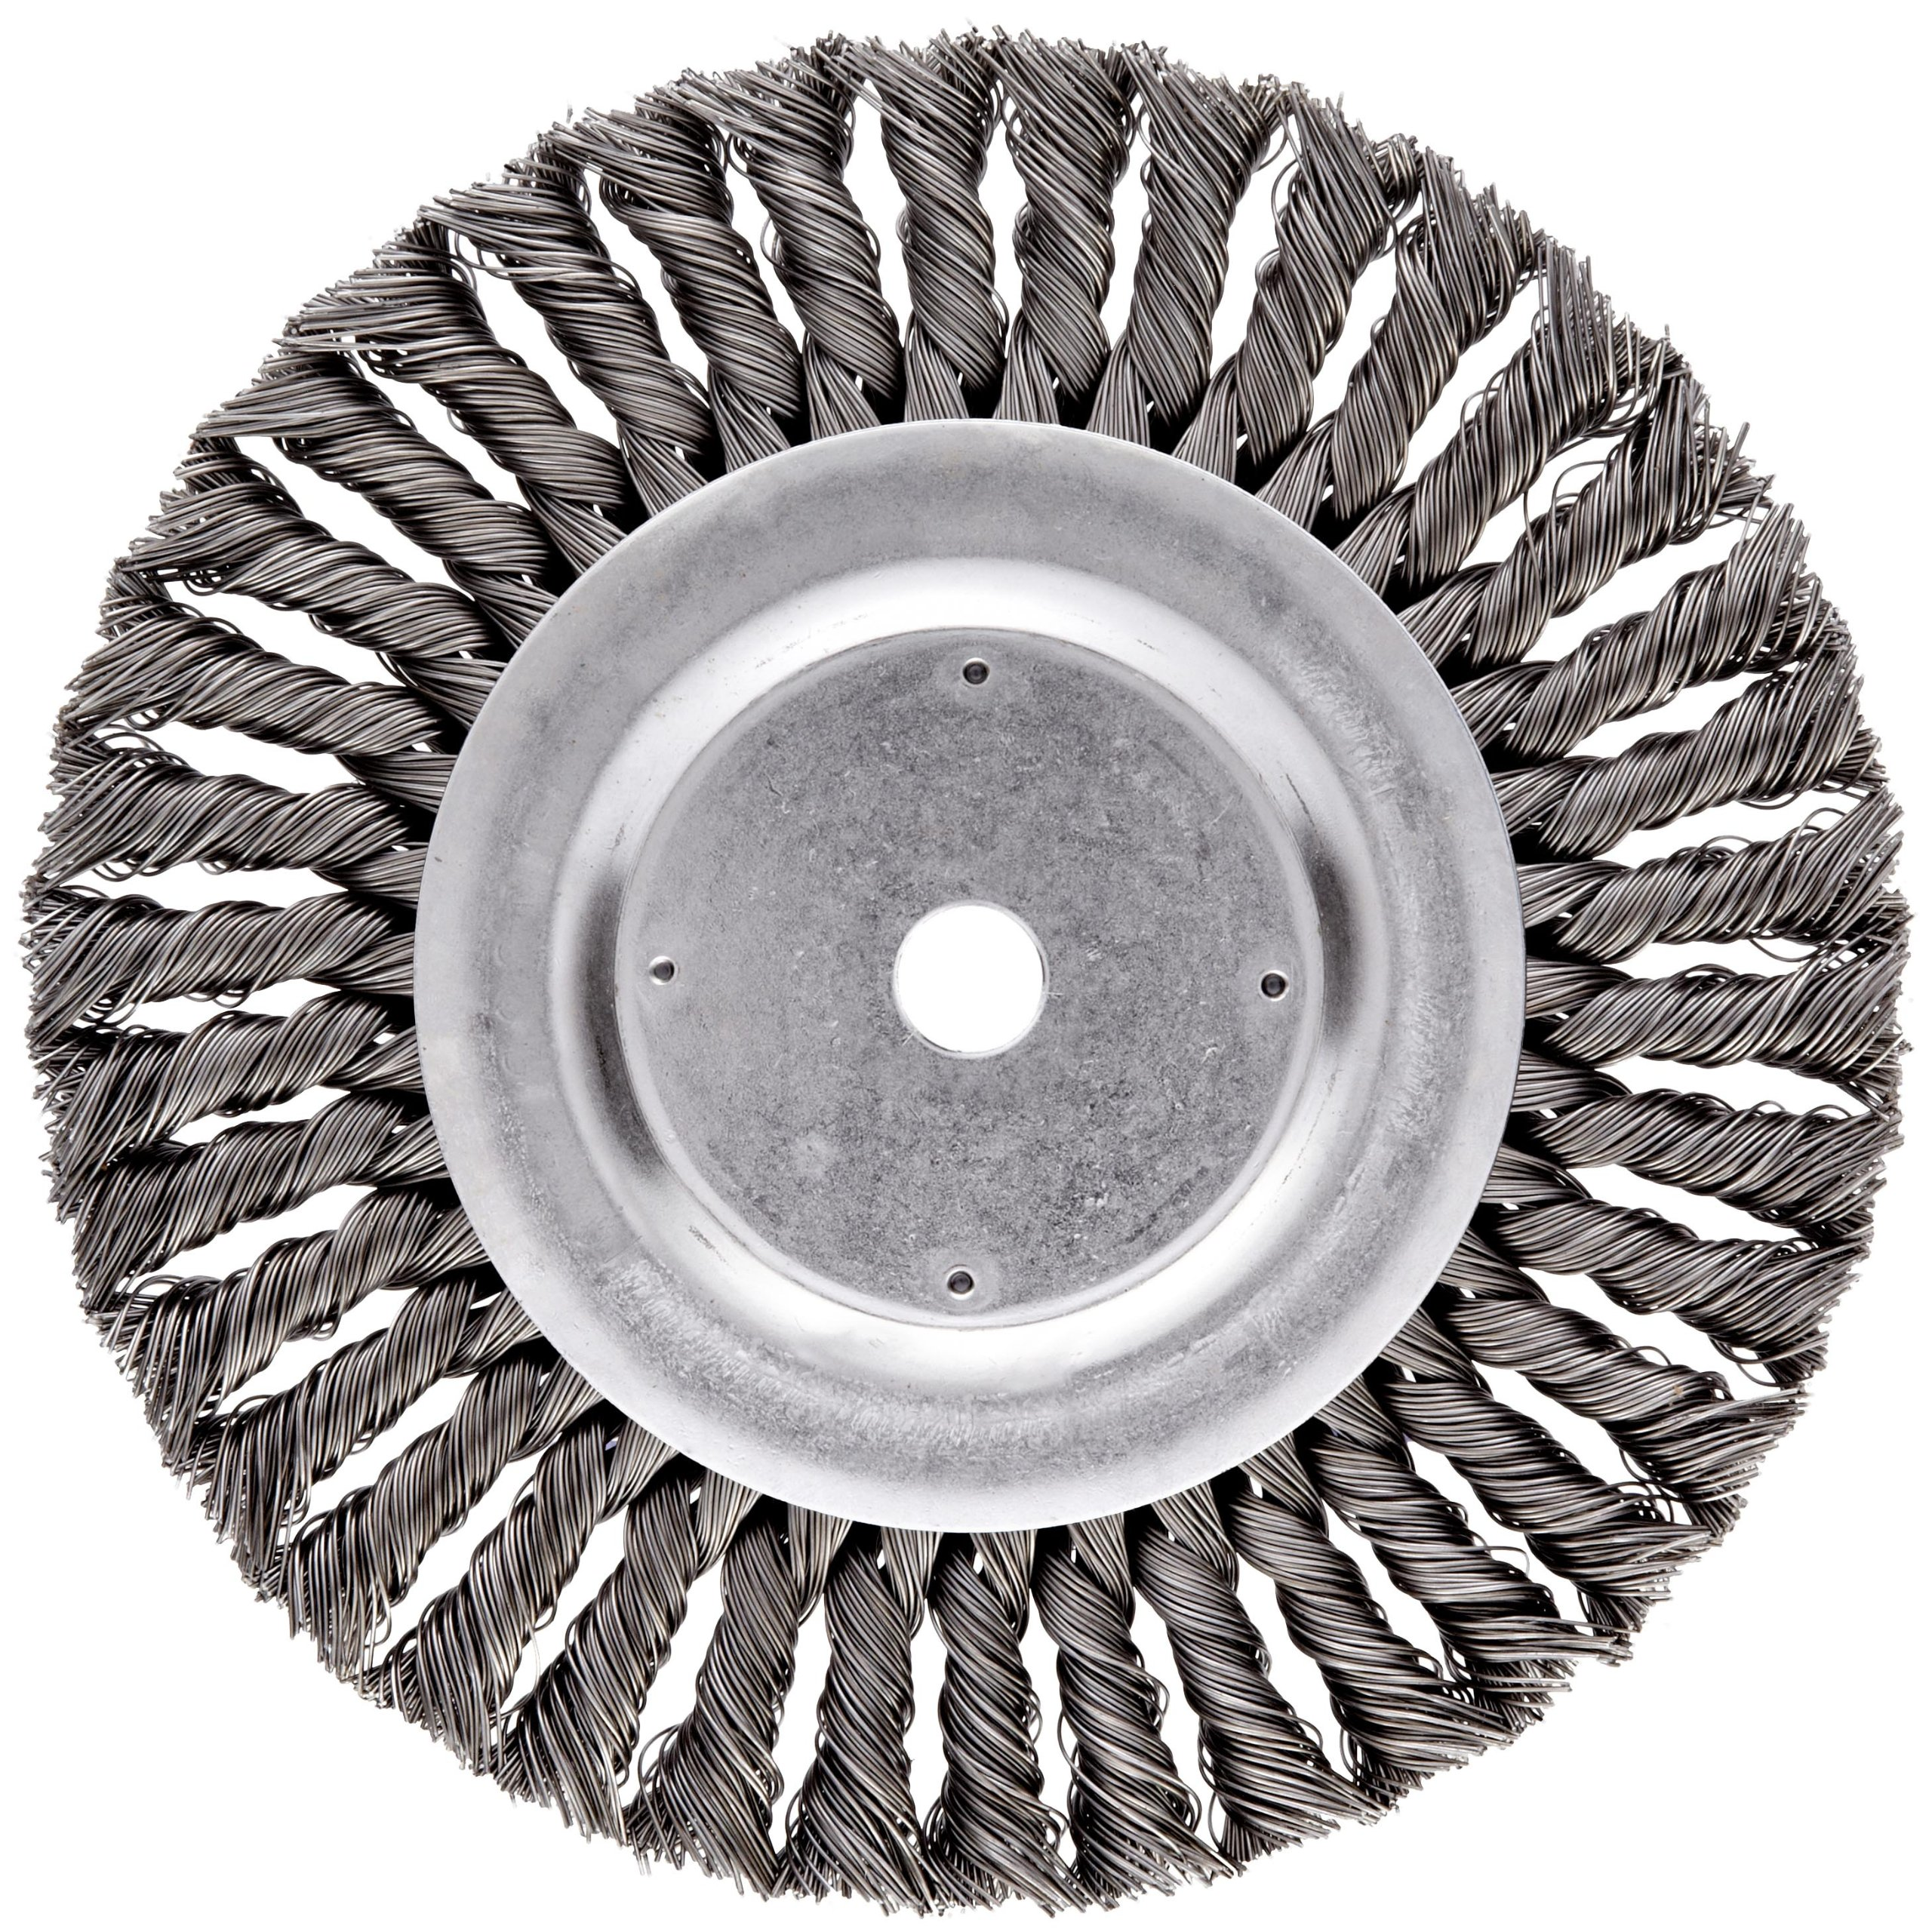 Weiler Dualife Standard Wire Wheel Brush, Round Hole, Steel, Partial Twist Knotted, 8'' Diameter, 0.023'' Wire Diameter, 5/8'' Arbor, 1-5/8'' Bristle Length, 5/8'' Brush Face Width, 6000 rpm by Weiler